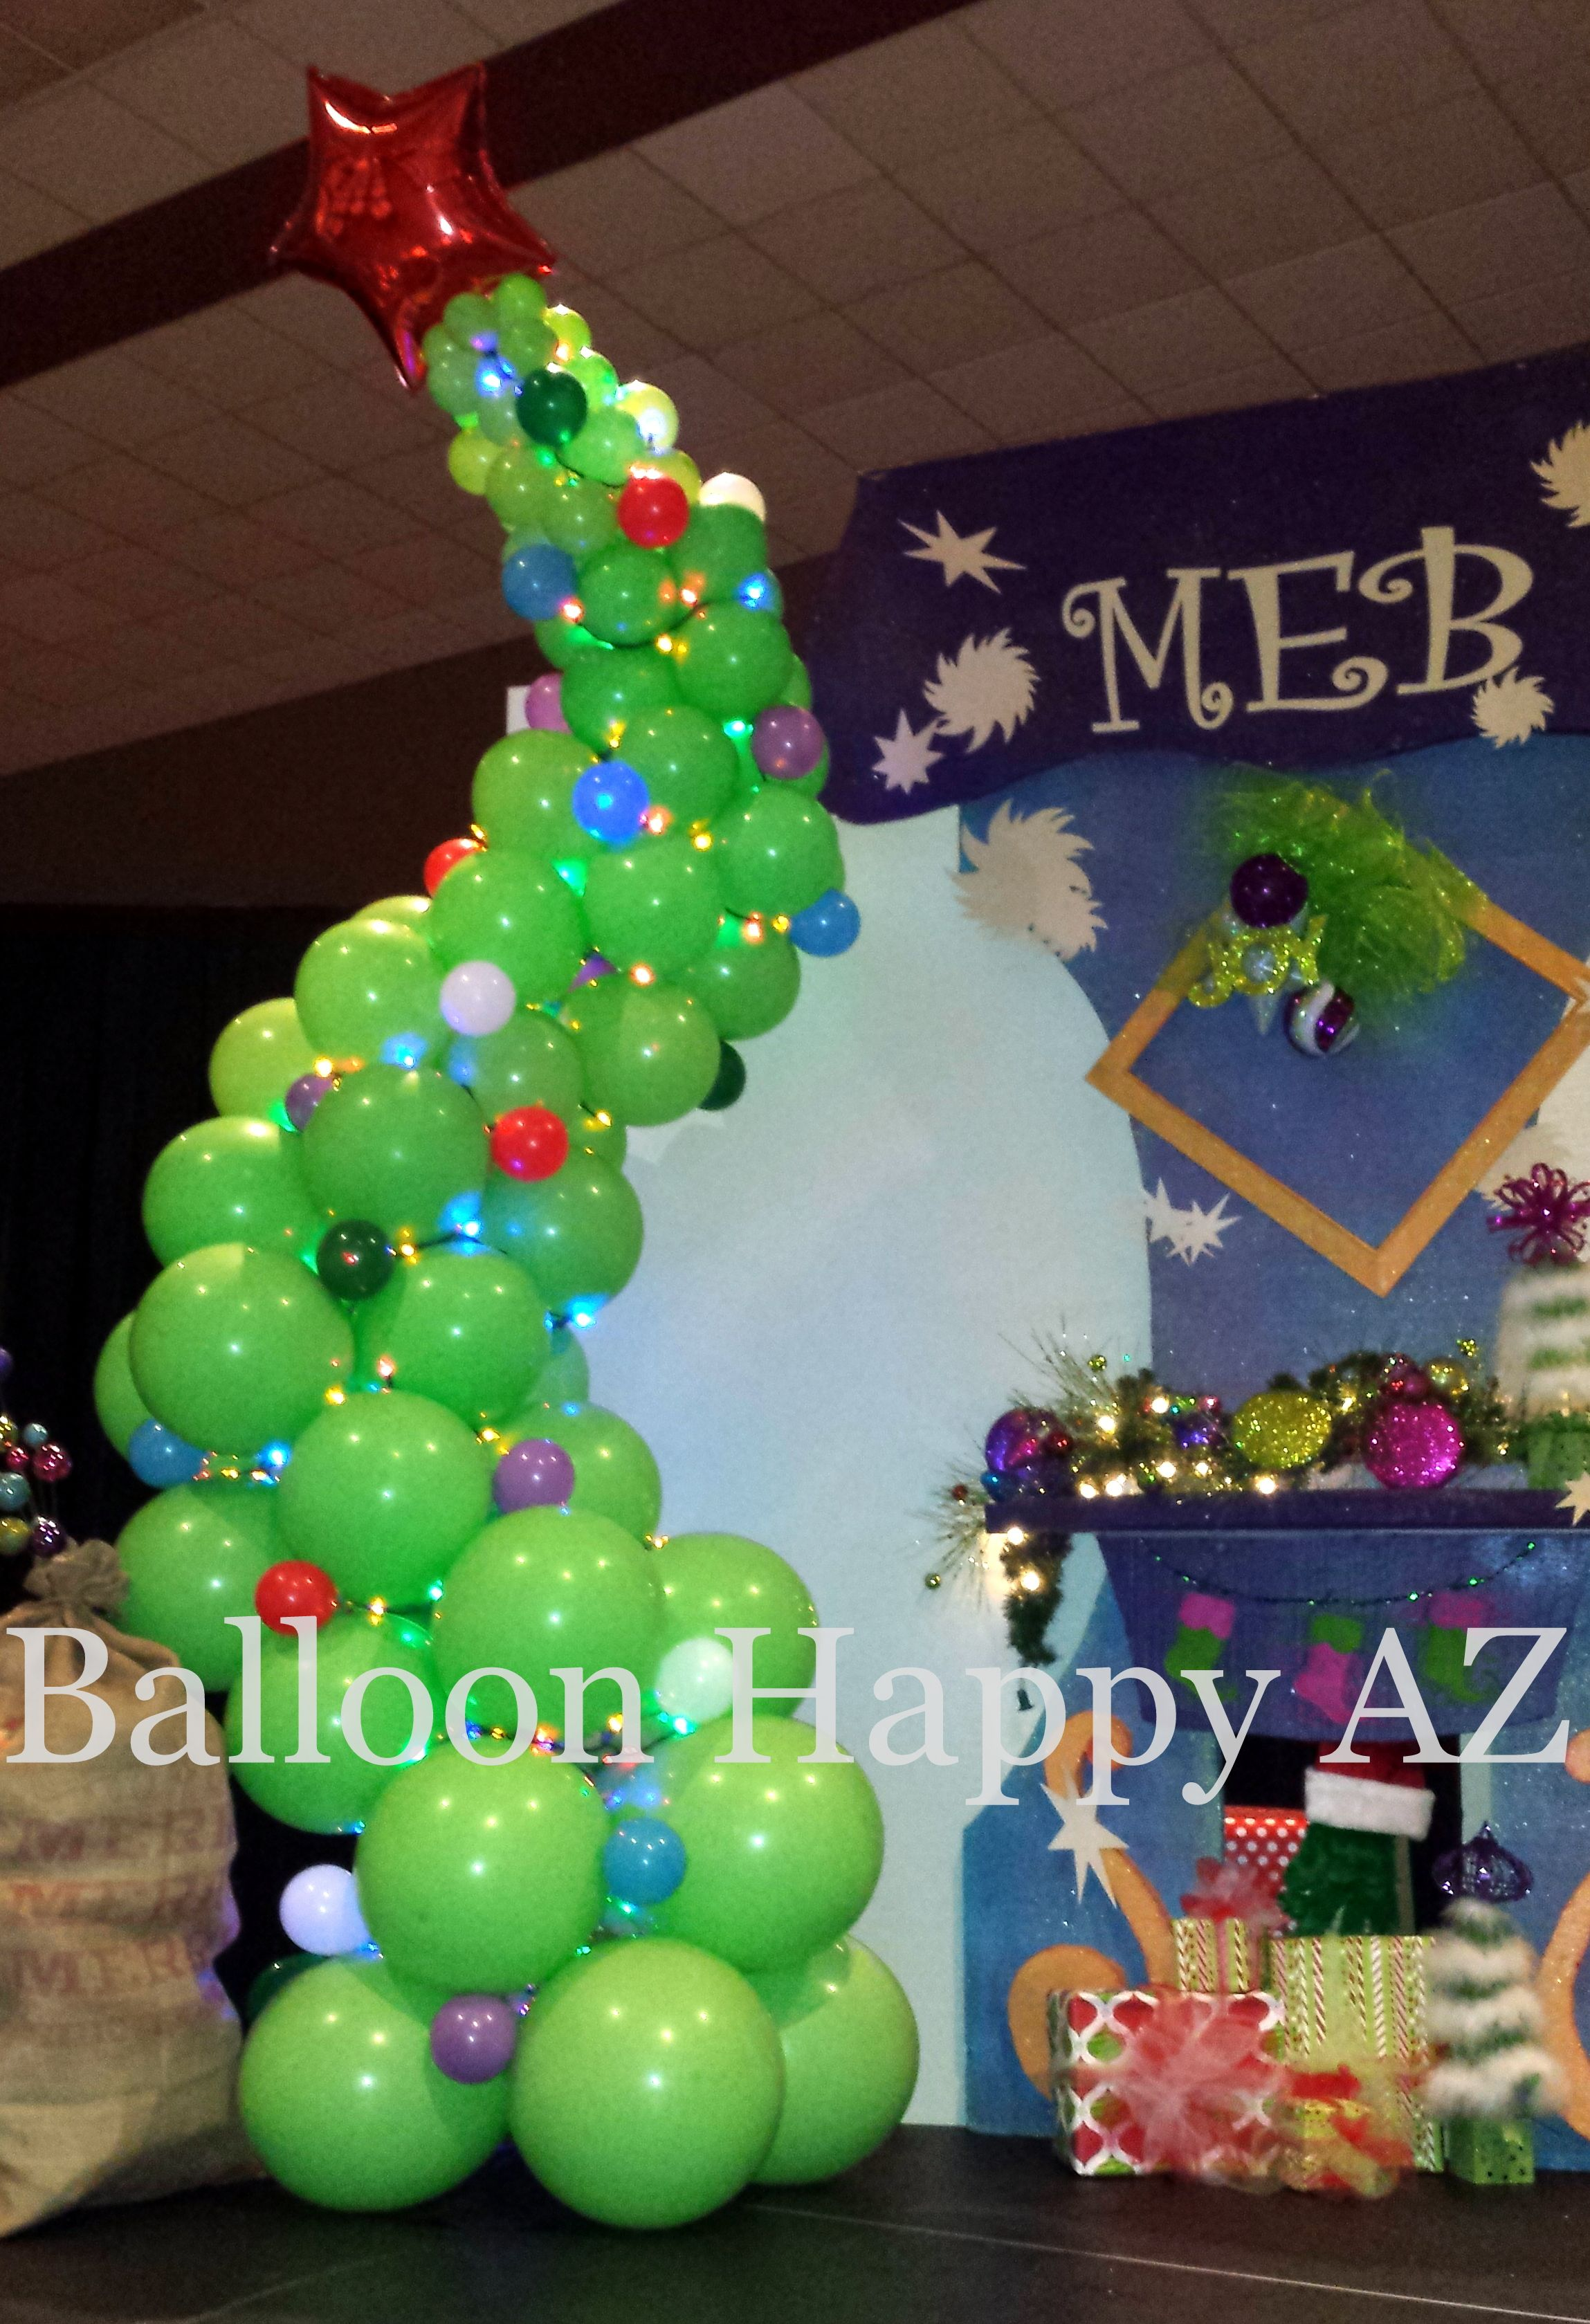 The Grinch Christmas Float Ideas.Whoville Christmas Party Ideas Balloonhappyaz Blog See What